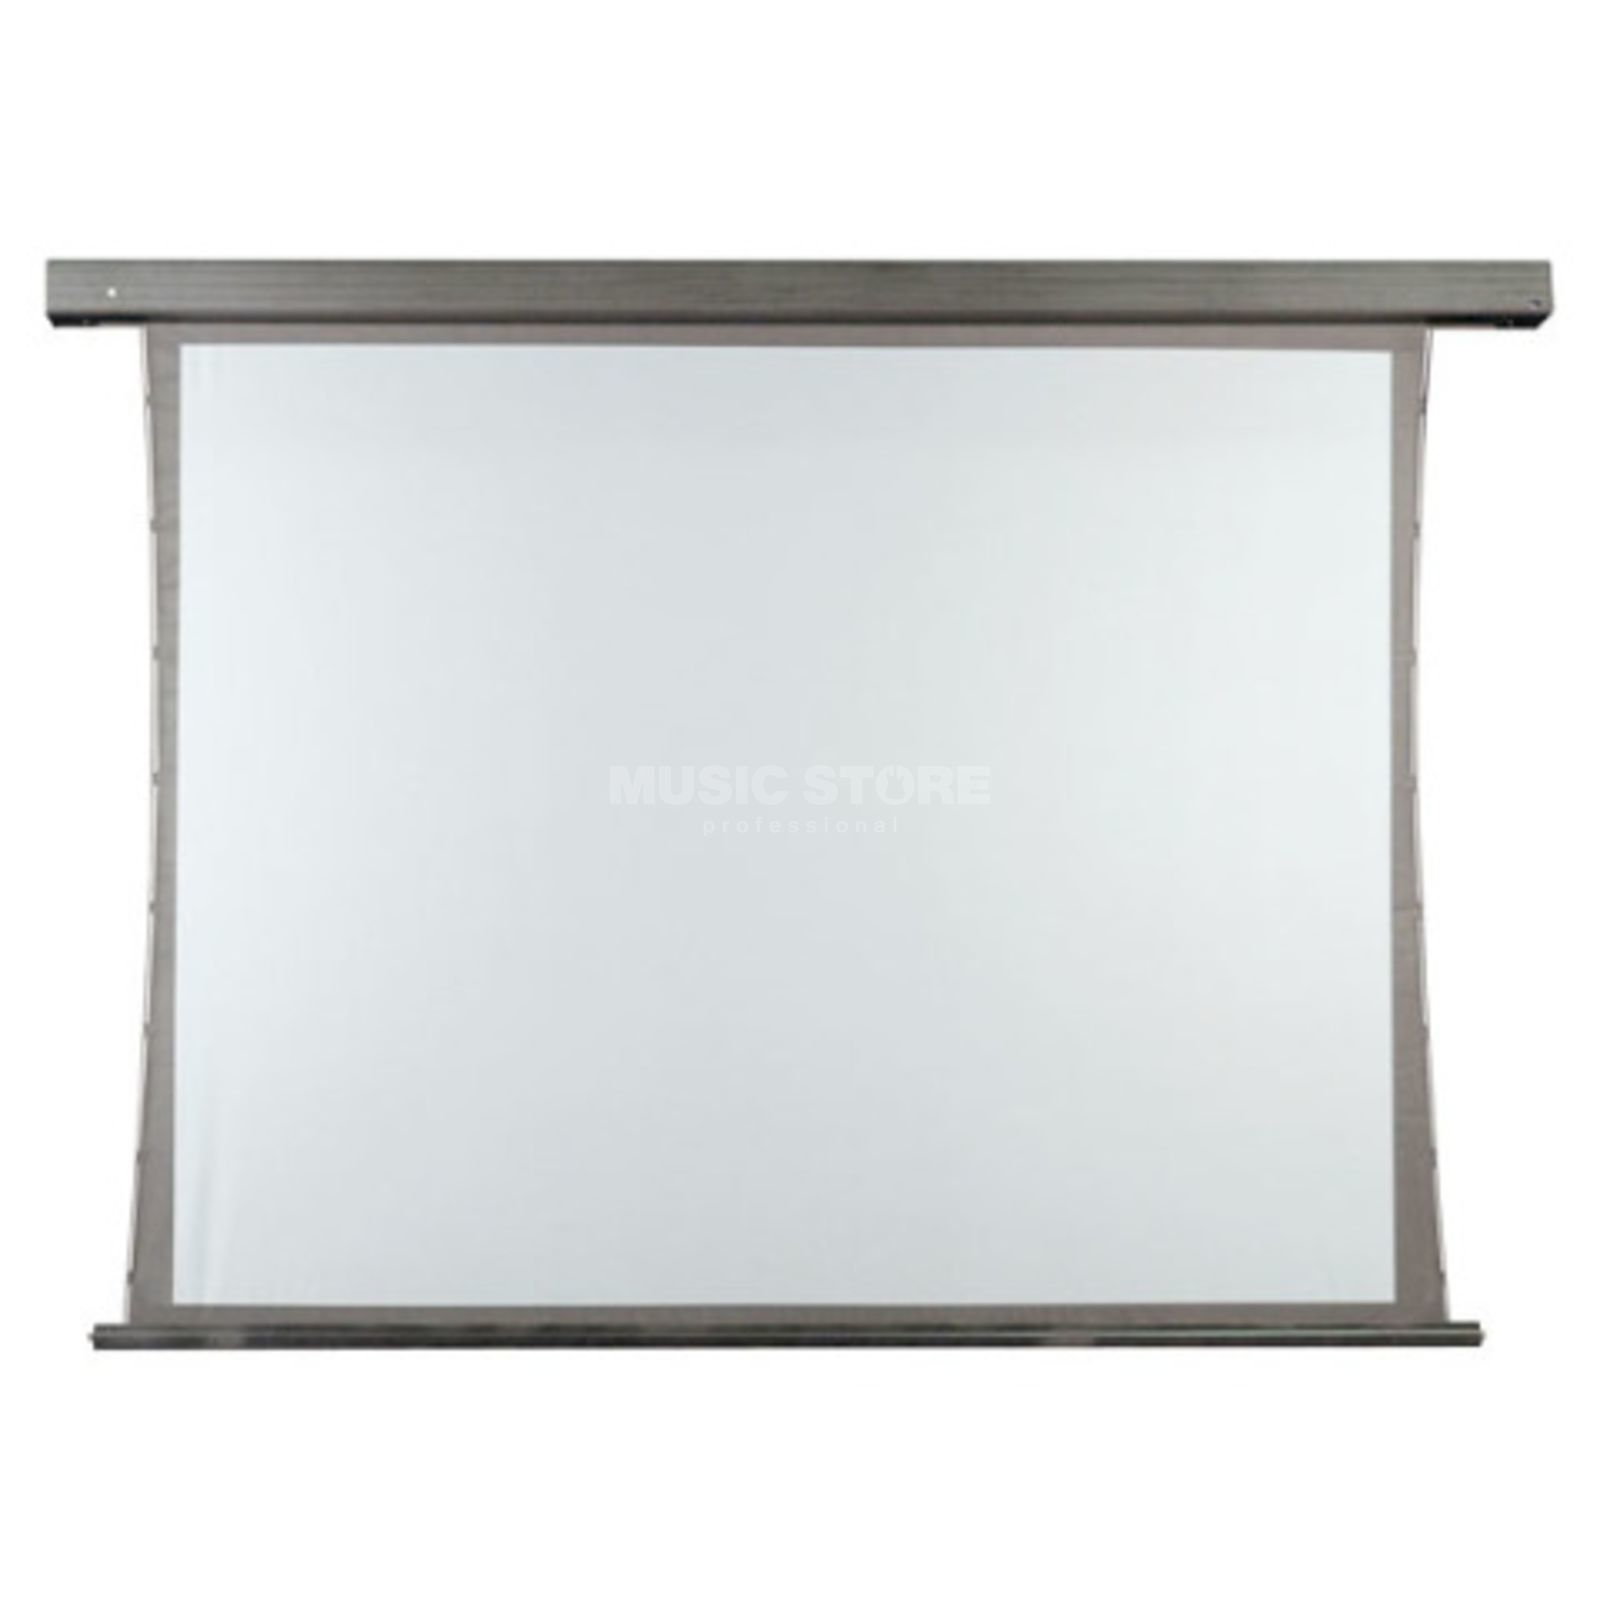 "DMT Rear Projection Screen 180"" elektrisch, 4:3 Produktbild"